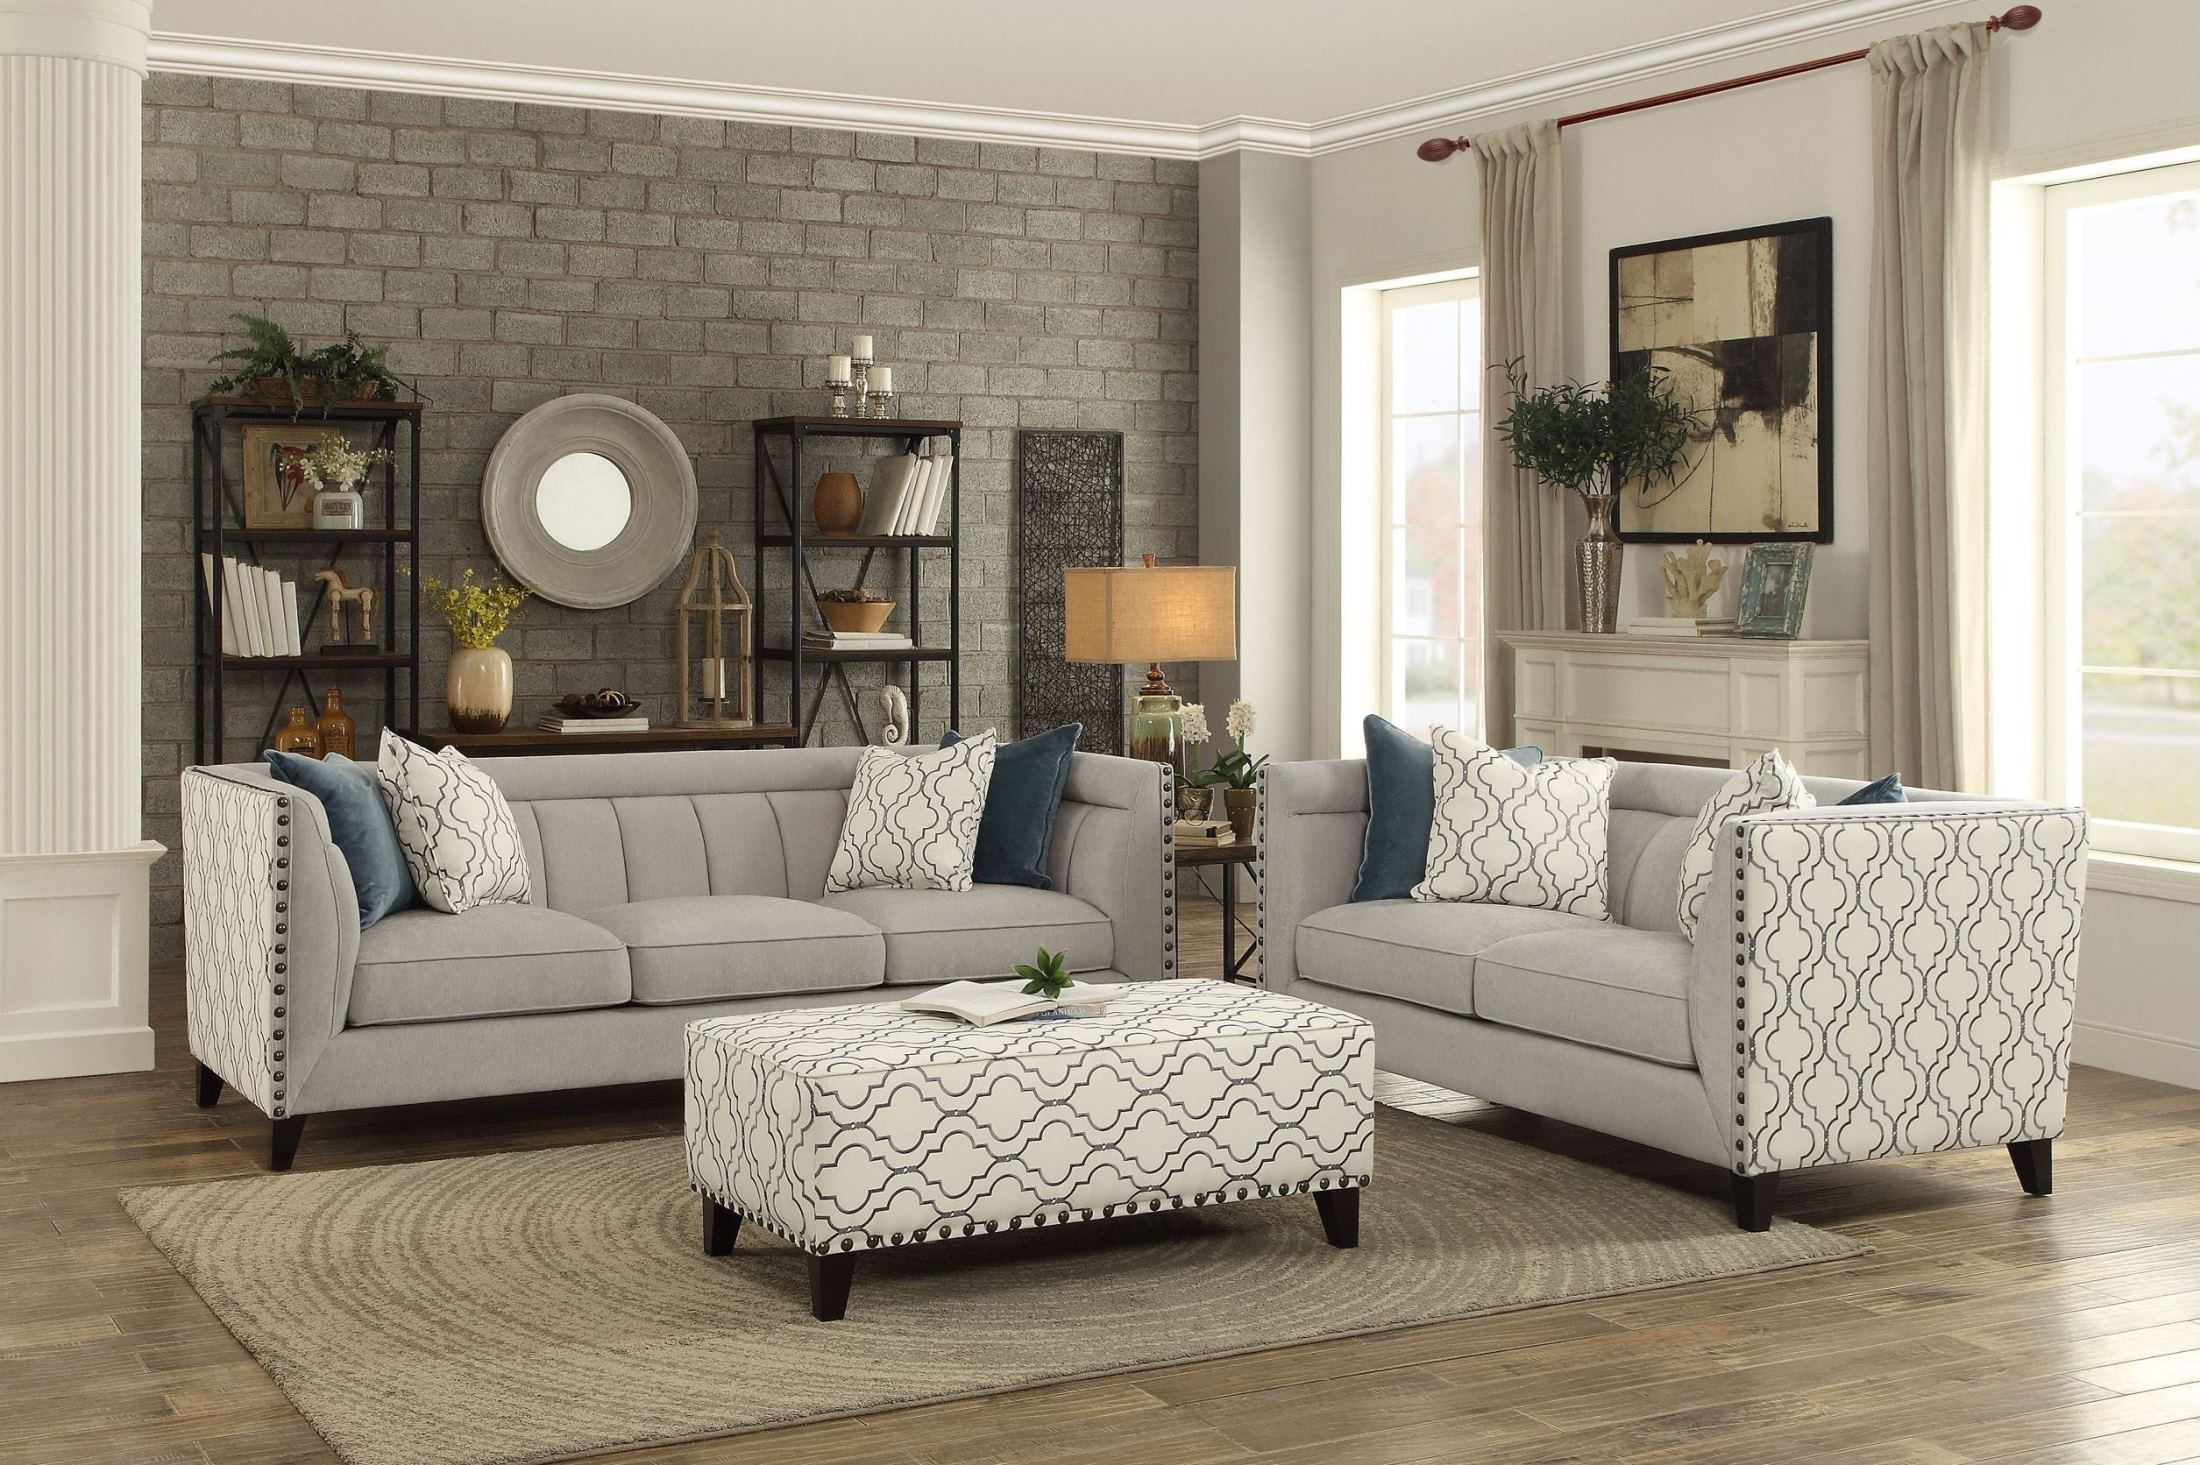 temptation light grey living room set from homelegance. Black Bedroom Furniture Sets. Home Design Ideas